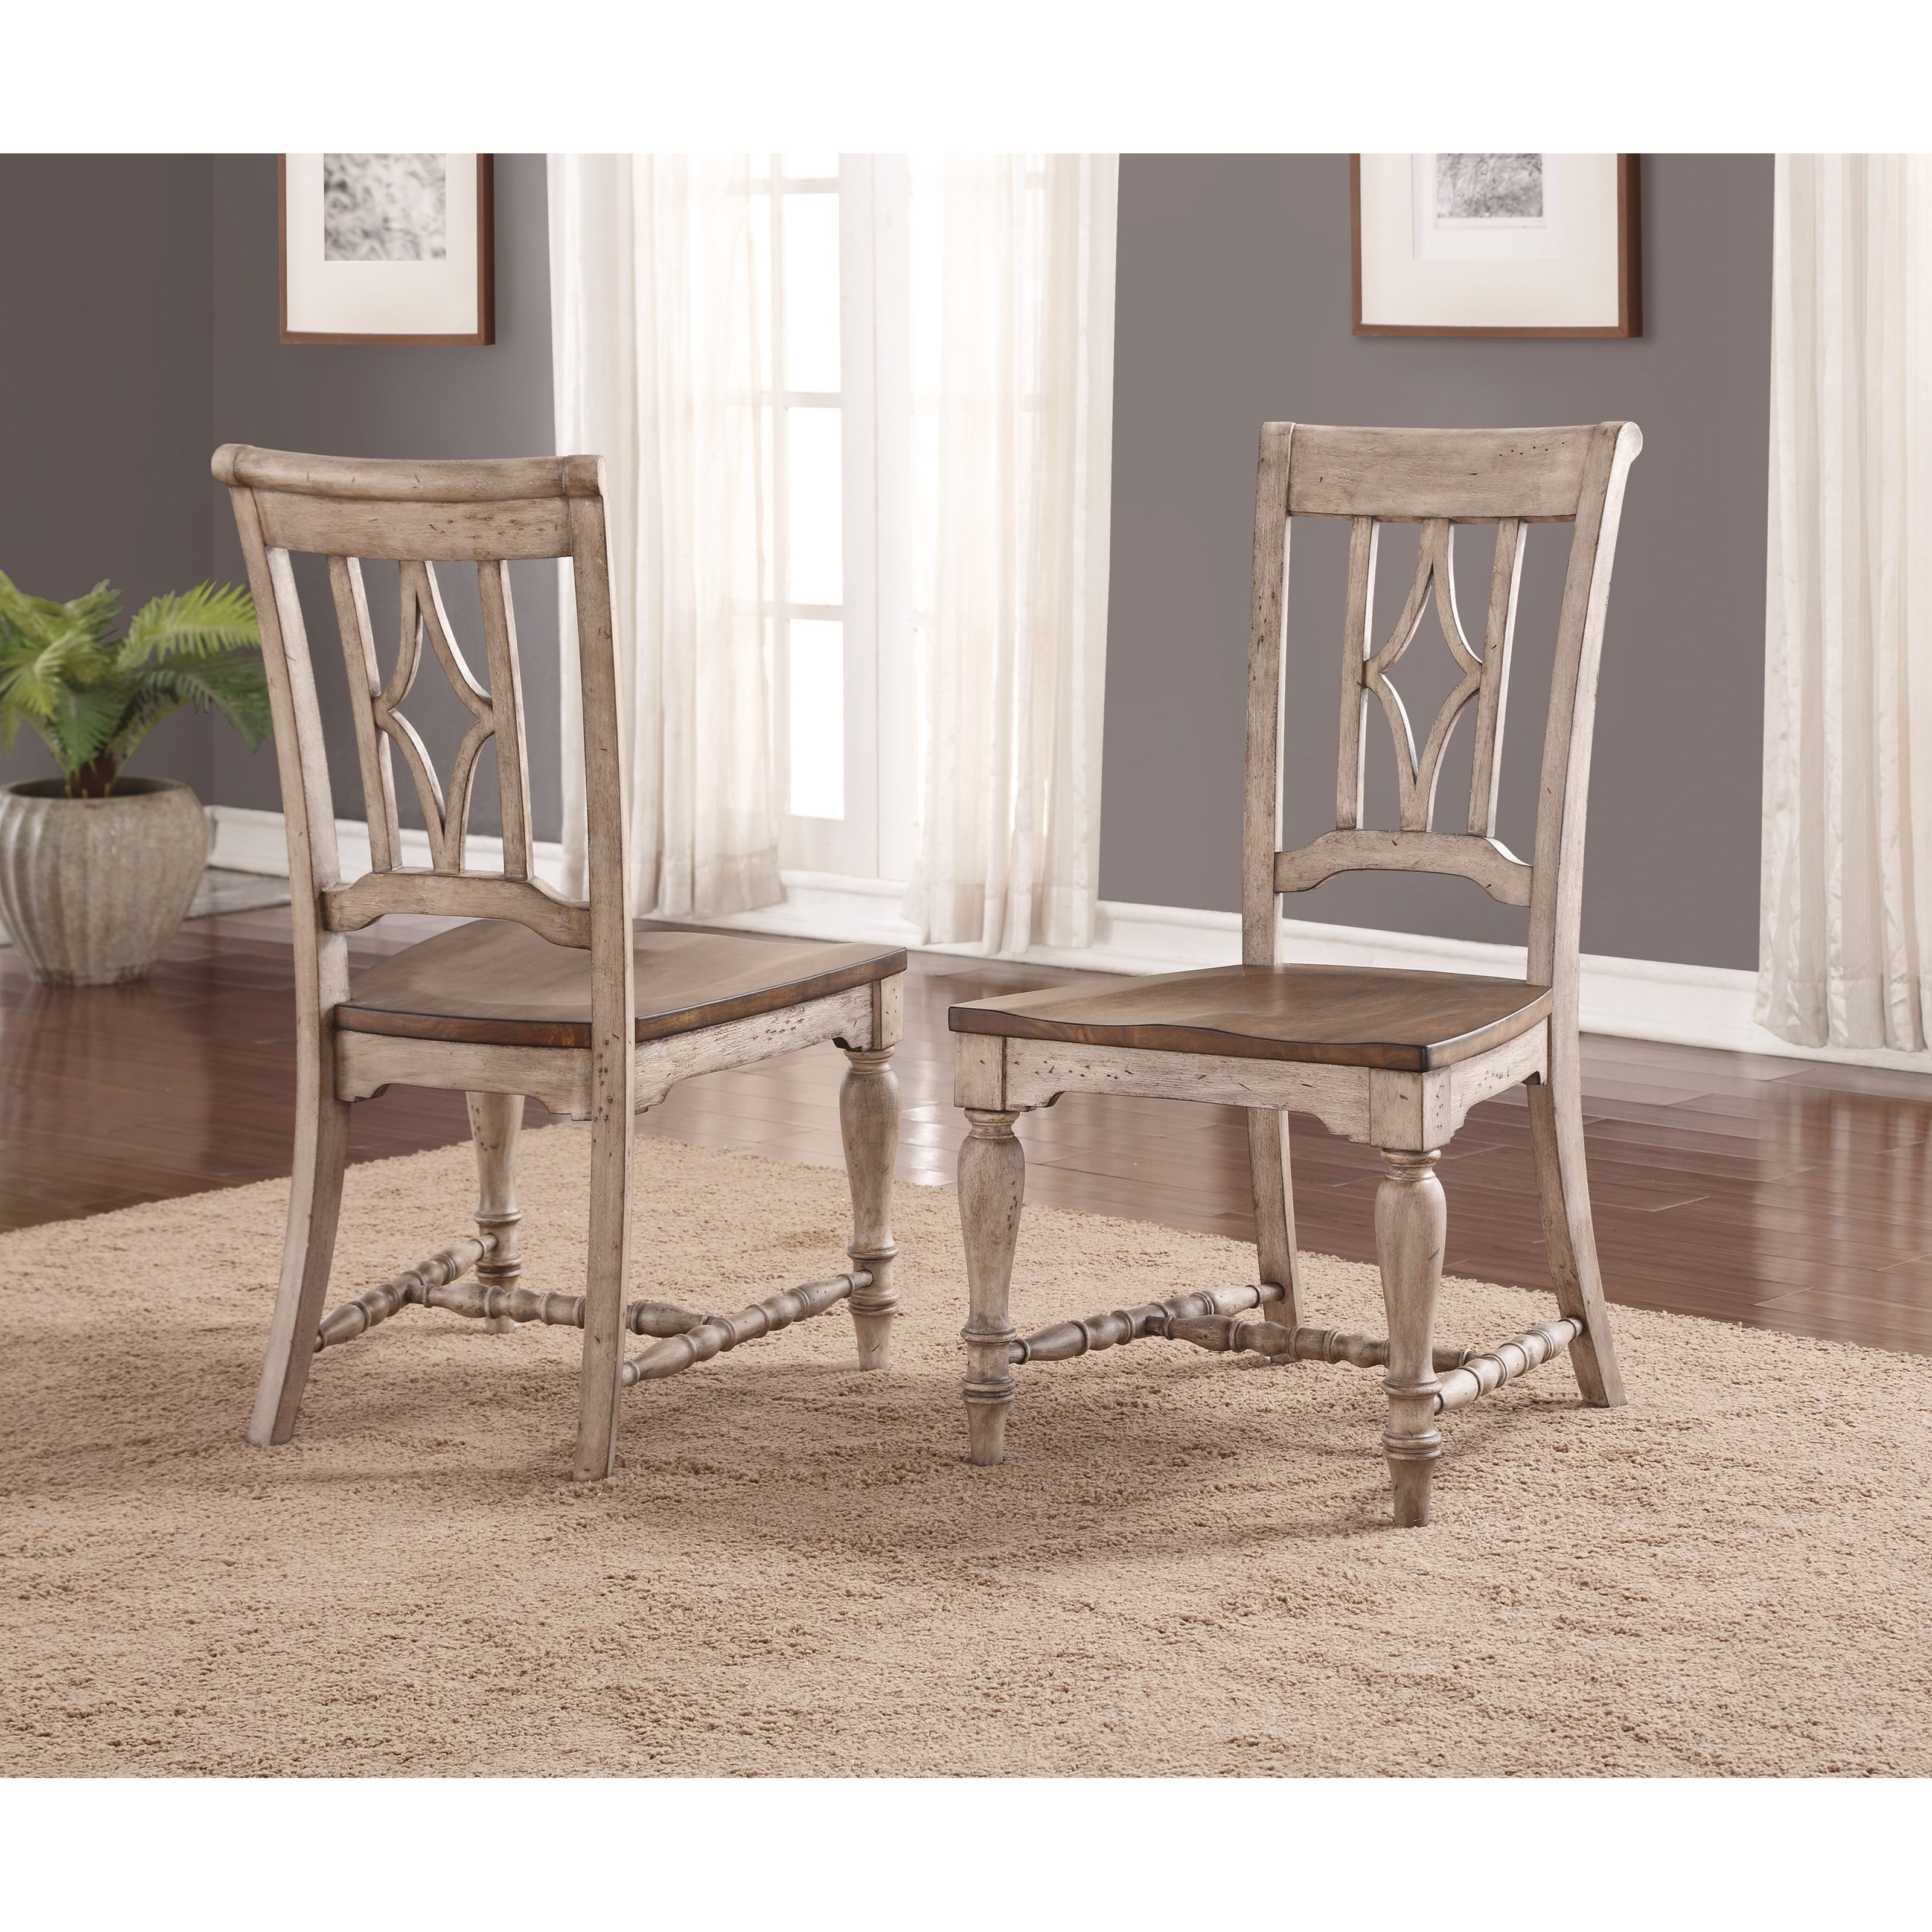 Plymouth Furniture Clearance Flexsteel Wynwood Collection Plymouth Cottage Dining Side